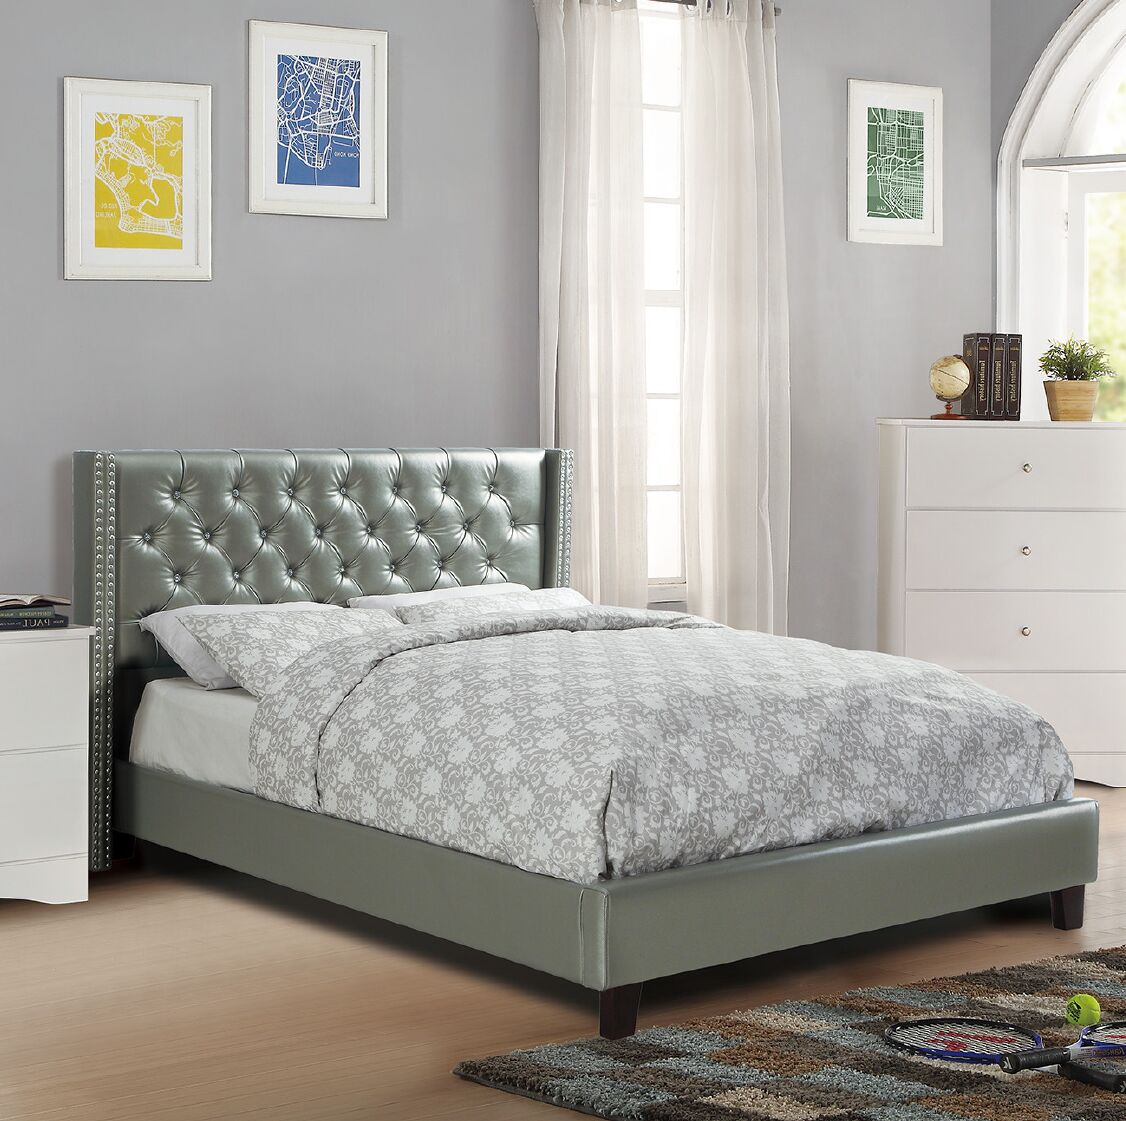 Nora Upholstered Platform Bed Size: Queen, Color: Silver